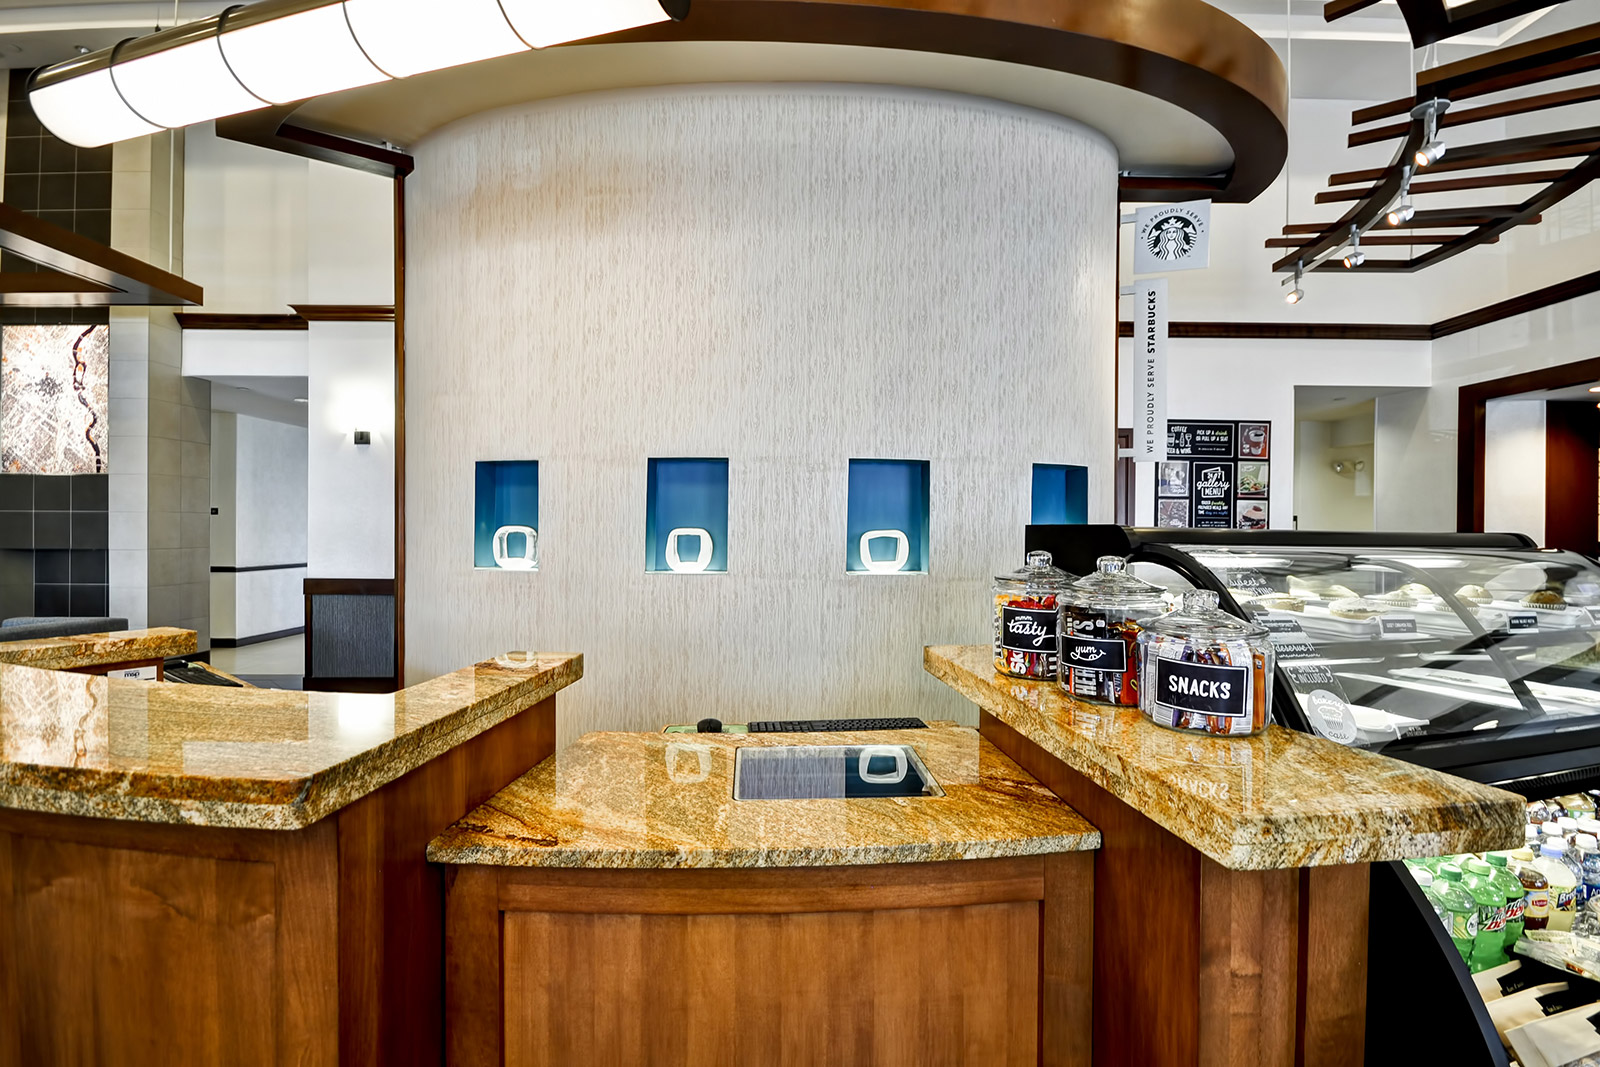 Hyatt Place front desk